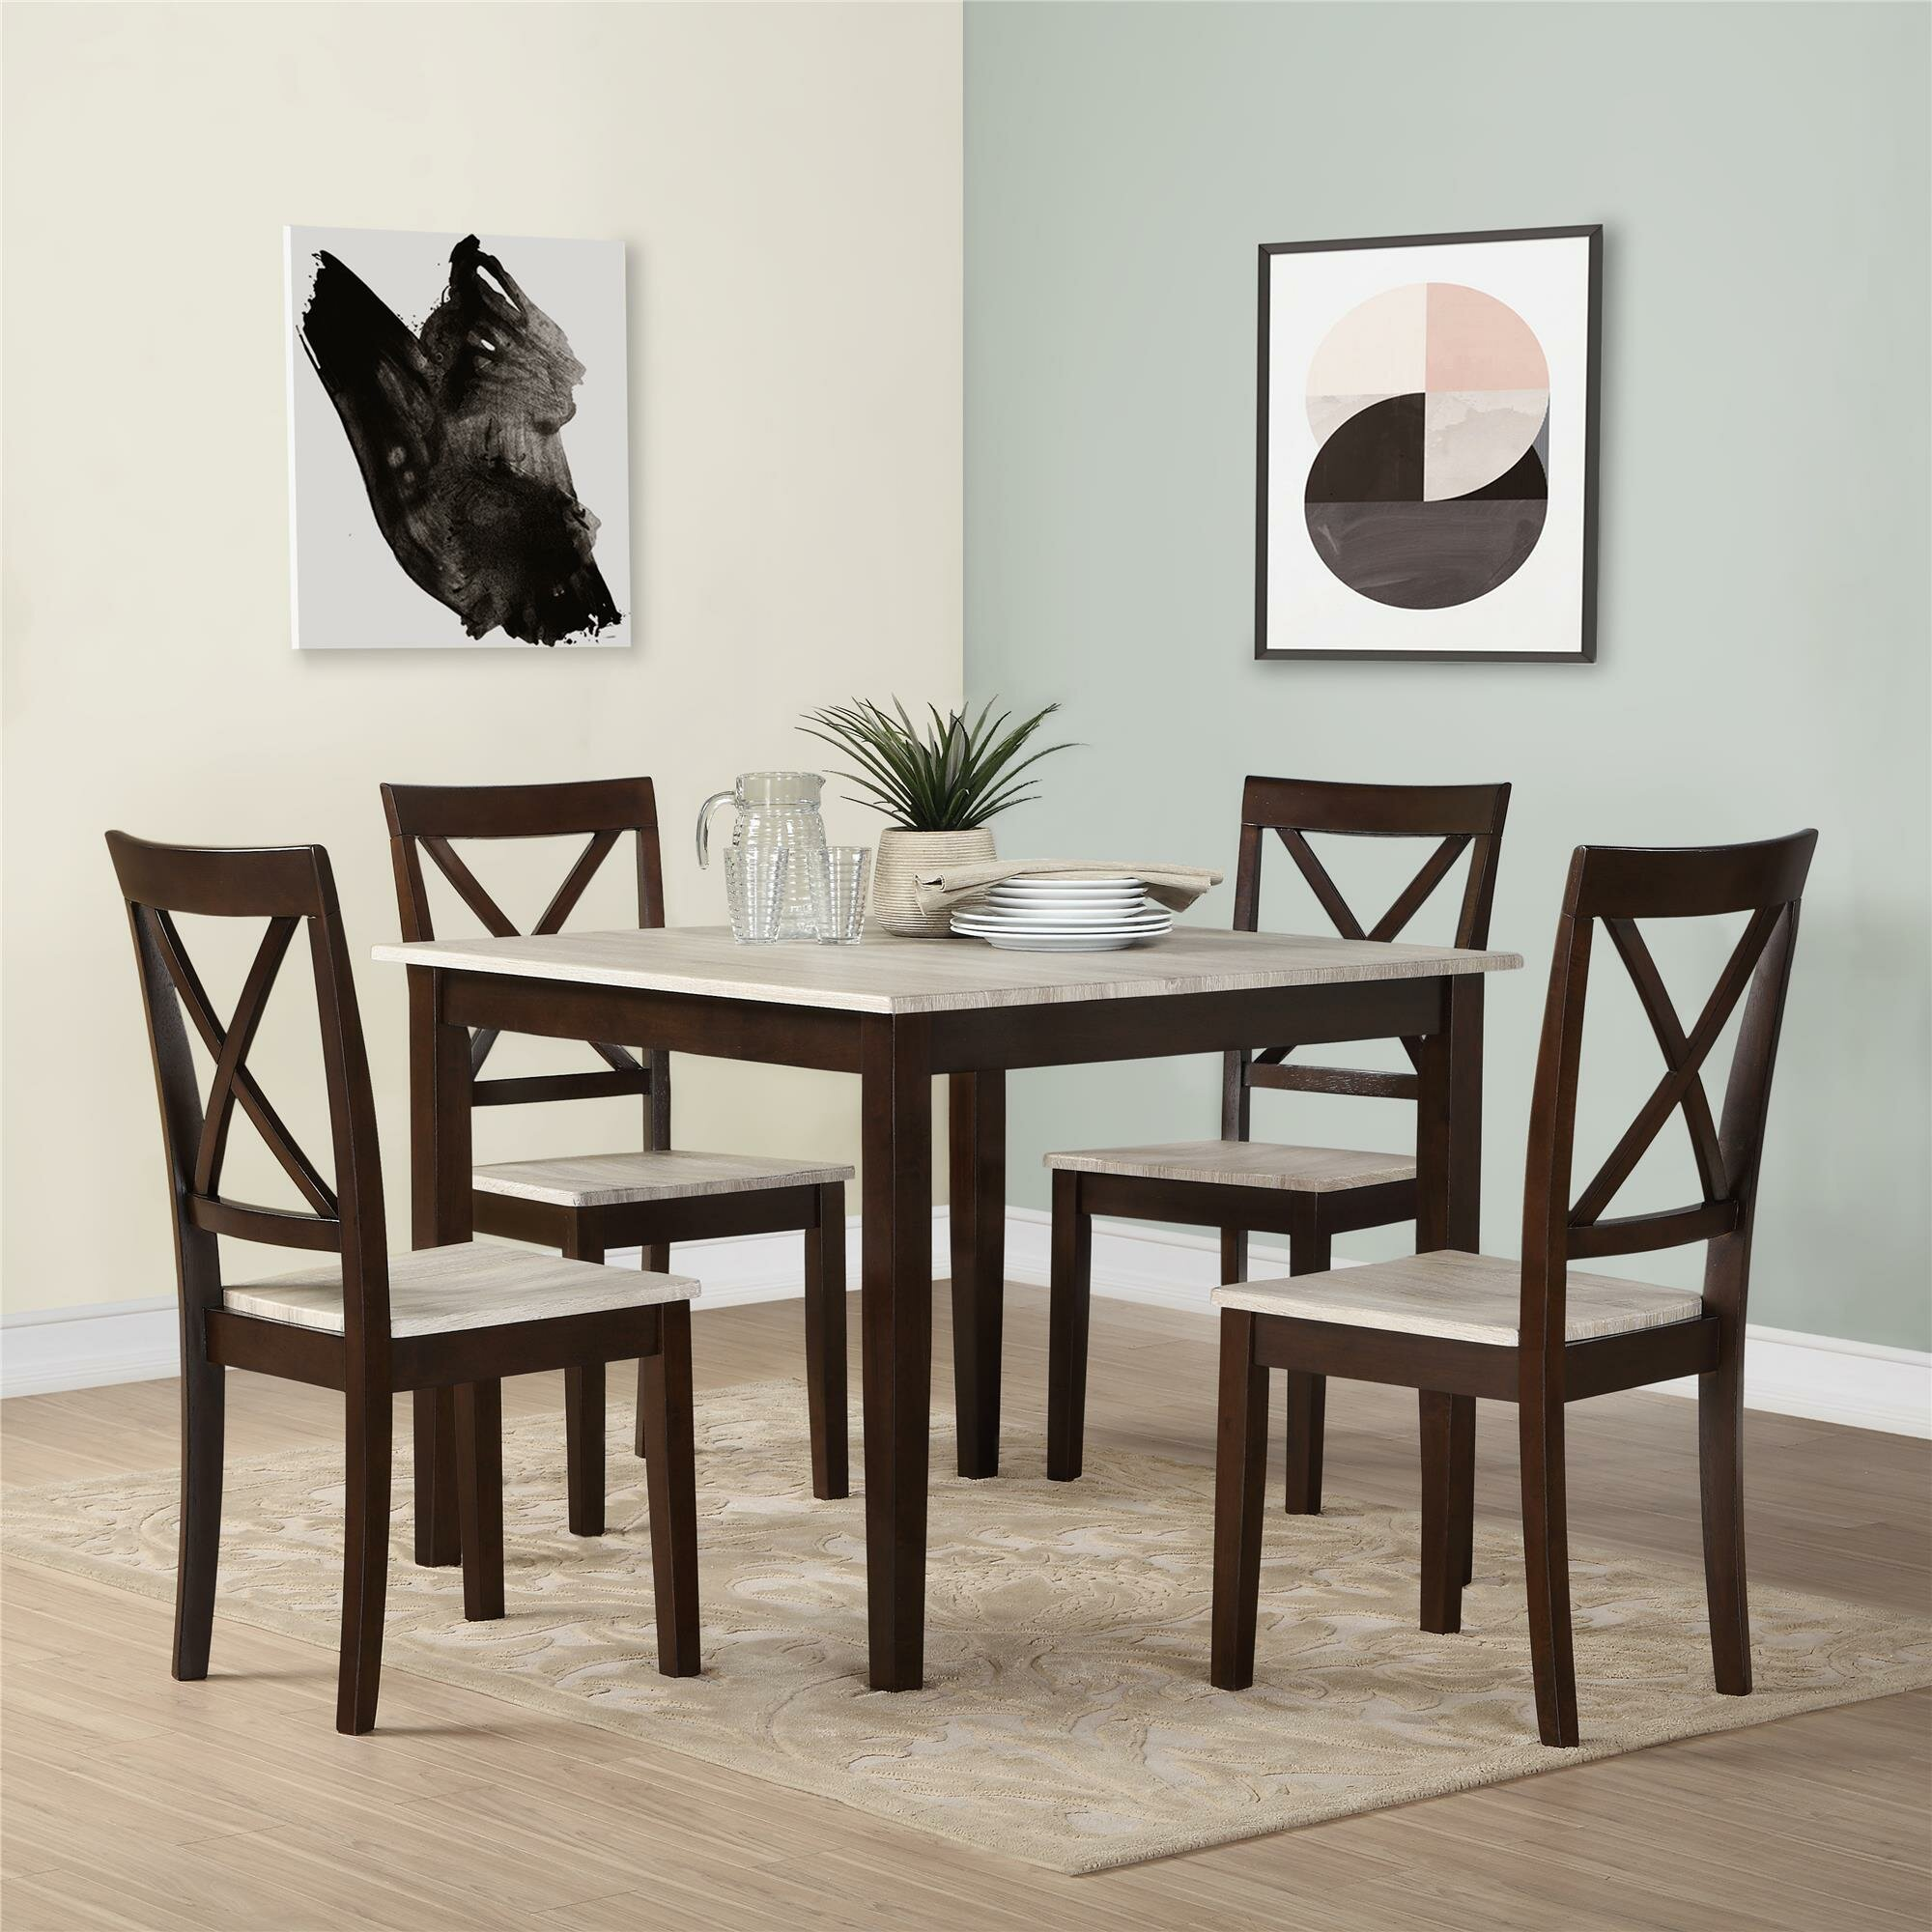 Andover mills tilley rustic 5 piece dining set reviews for 2 piece dining room set